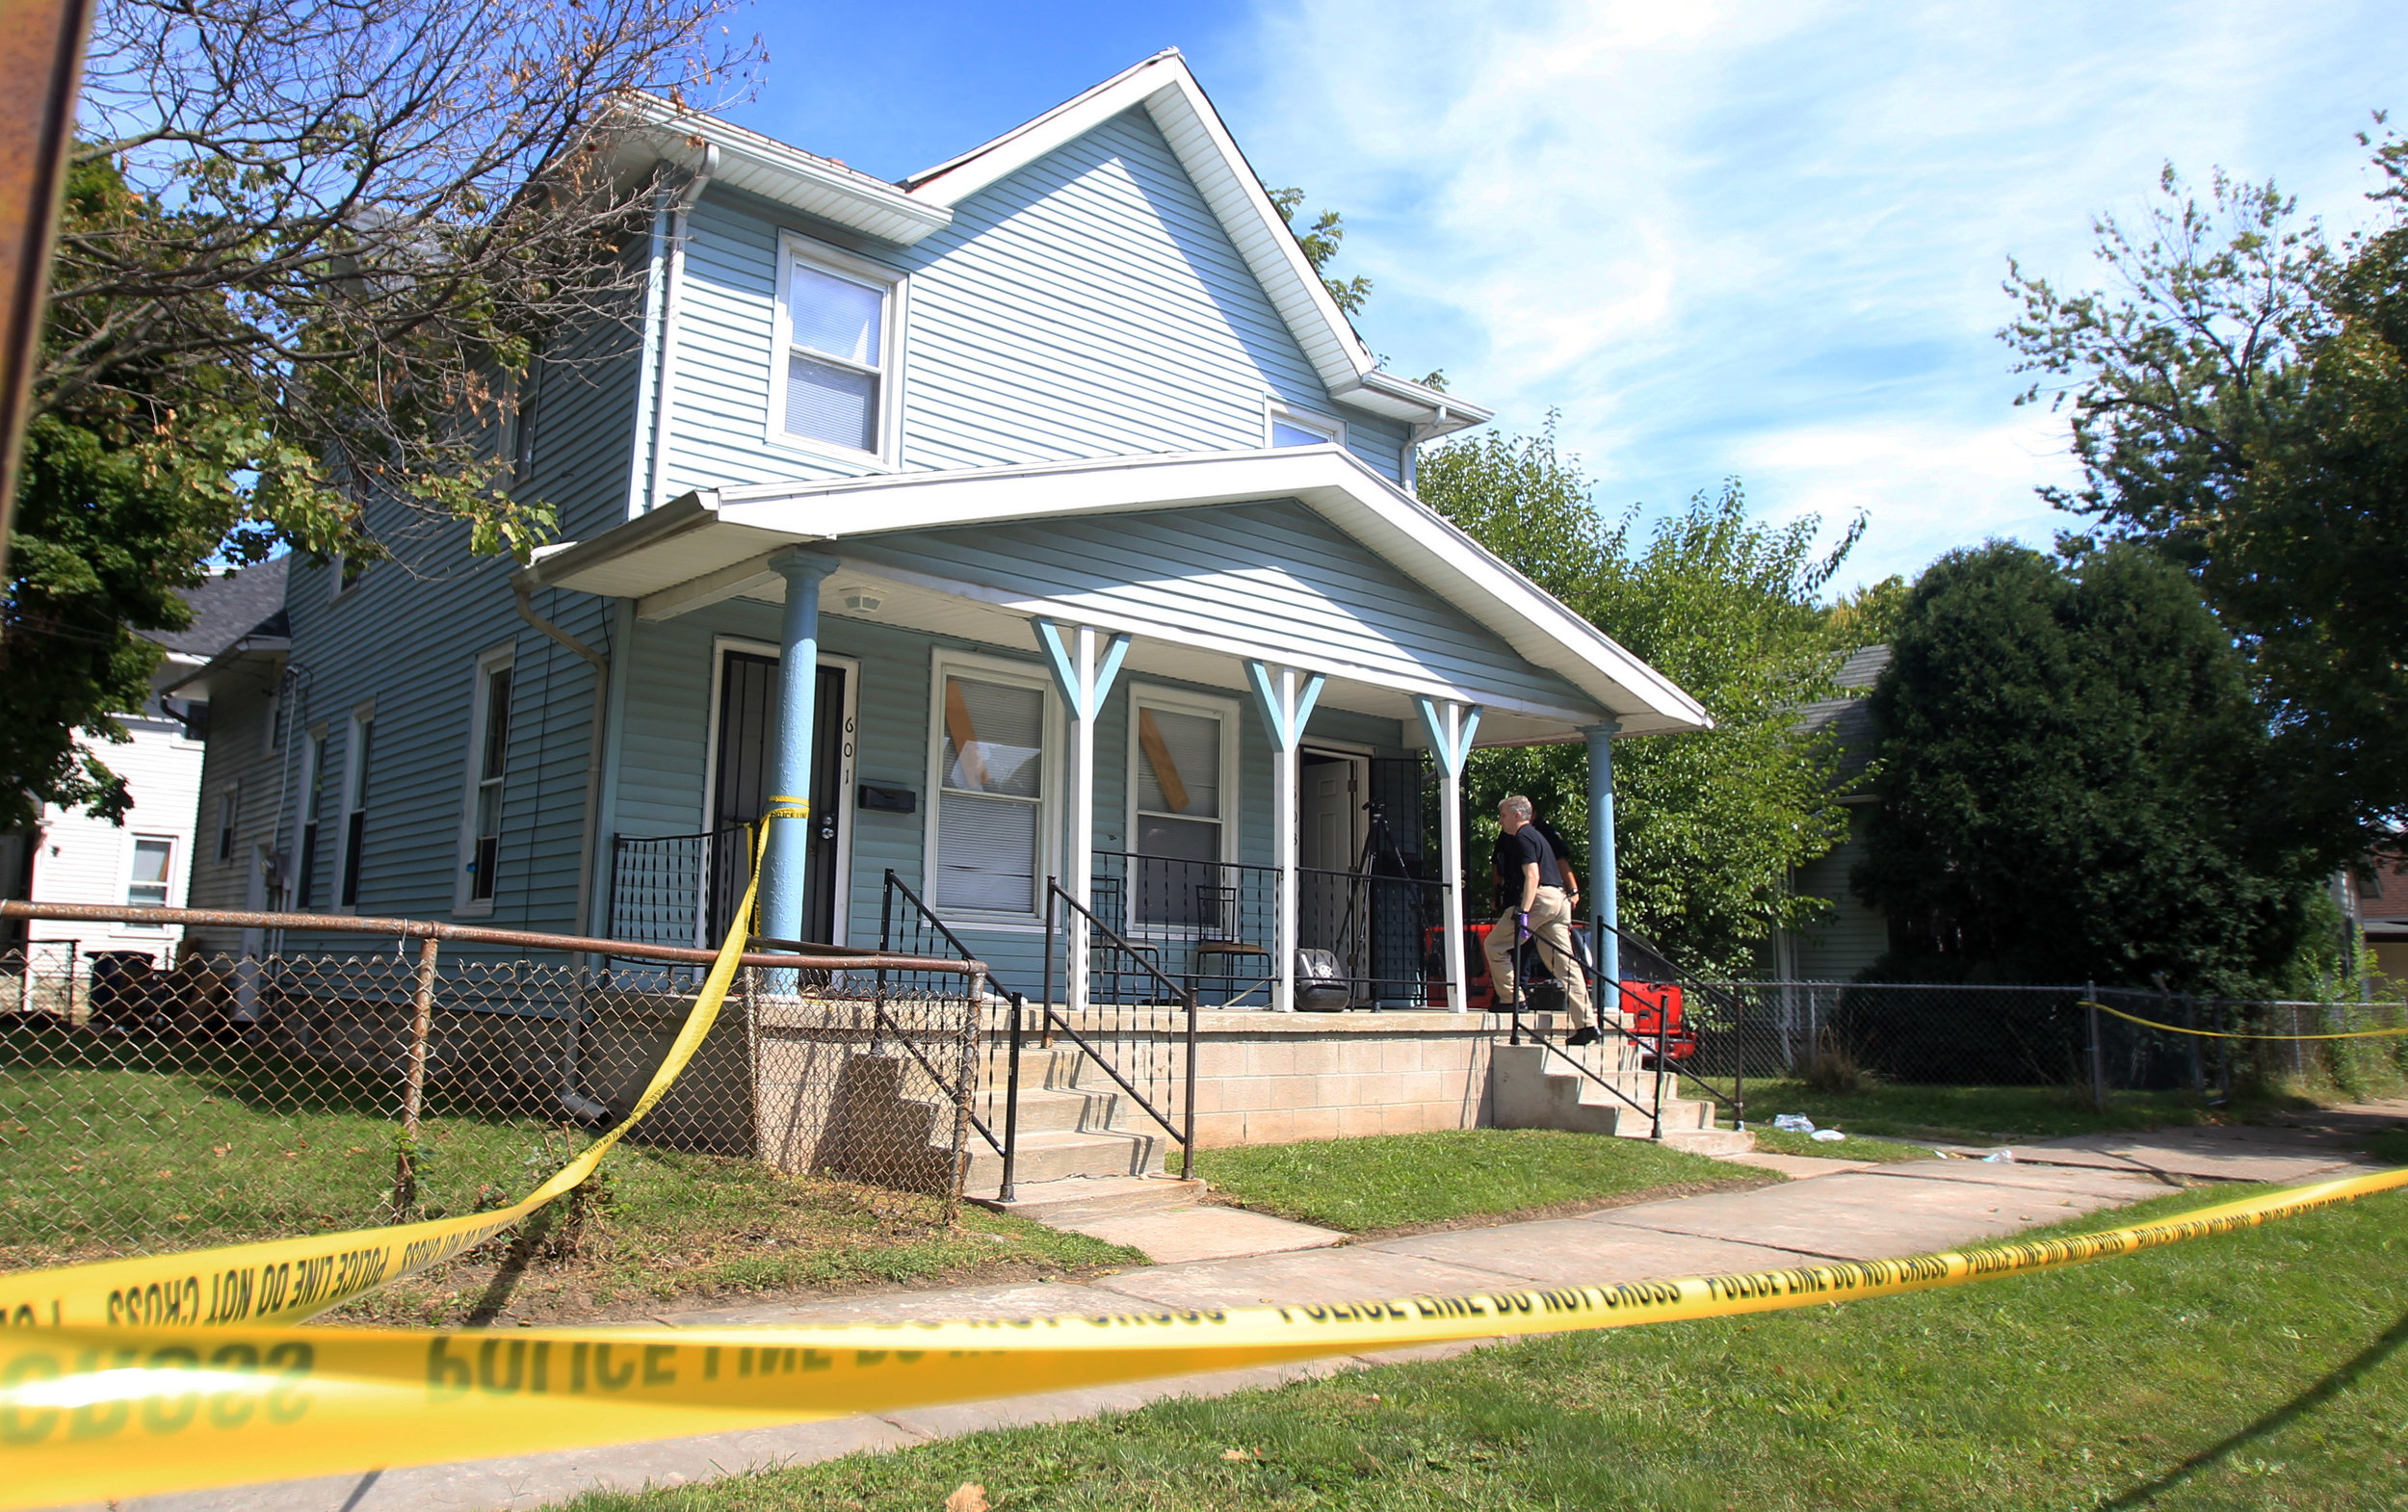 A Toledo Police Department investigator enters 603 Church Street in East Toledo to continue the investigation of the shooting in the morning of Thursday, Sept. 15 photographed on Thursday, Sept. 15, 2016.